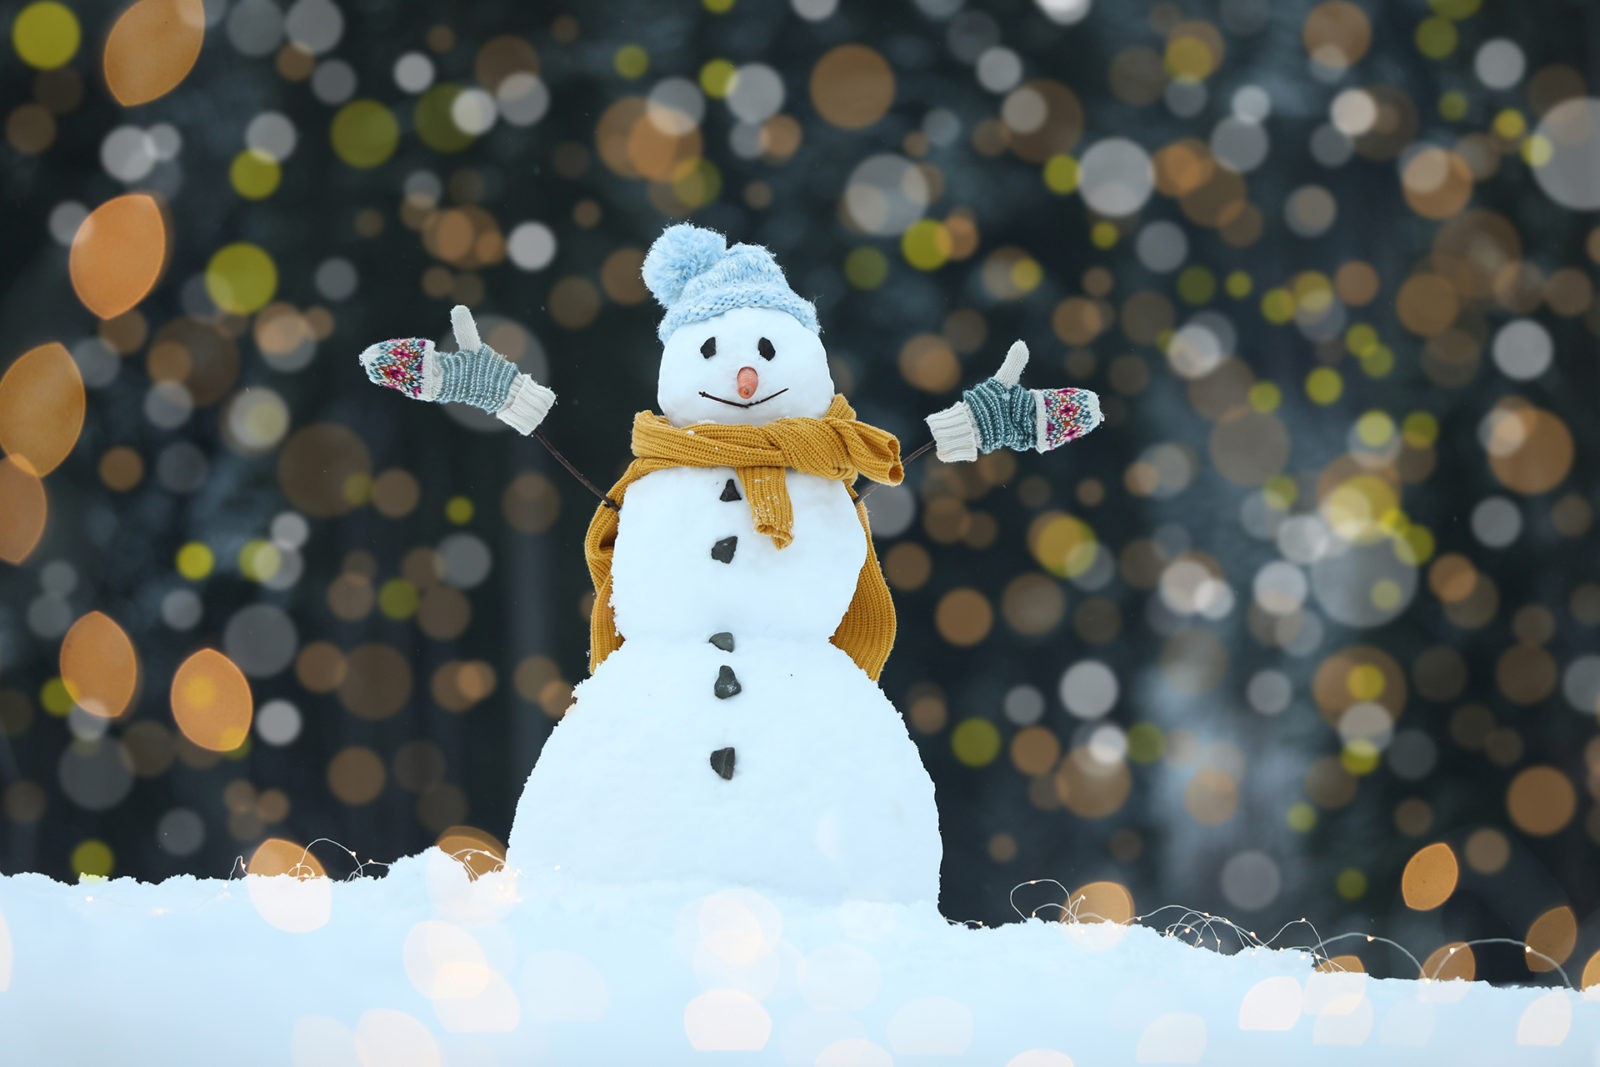 Adorable smiling snowman and blurred Christmas lights on background outdoors. Winter day